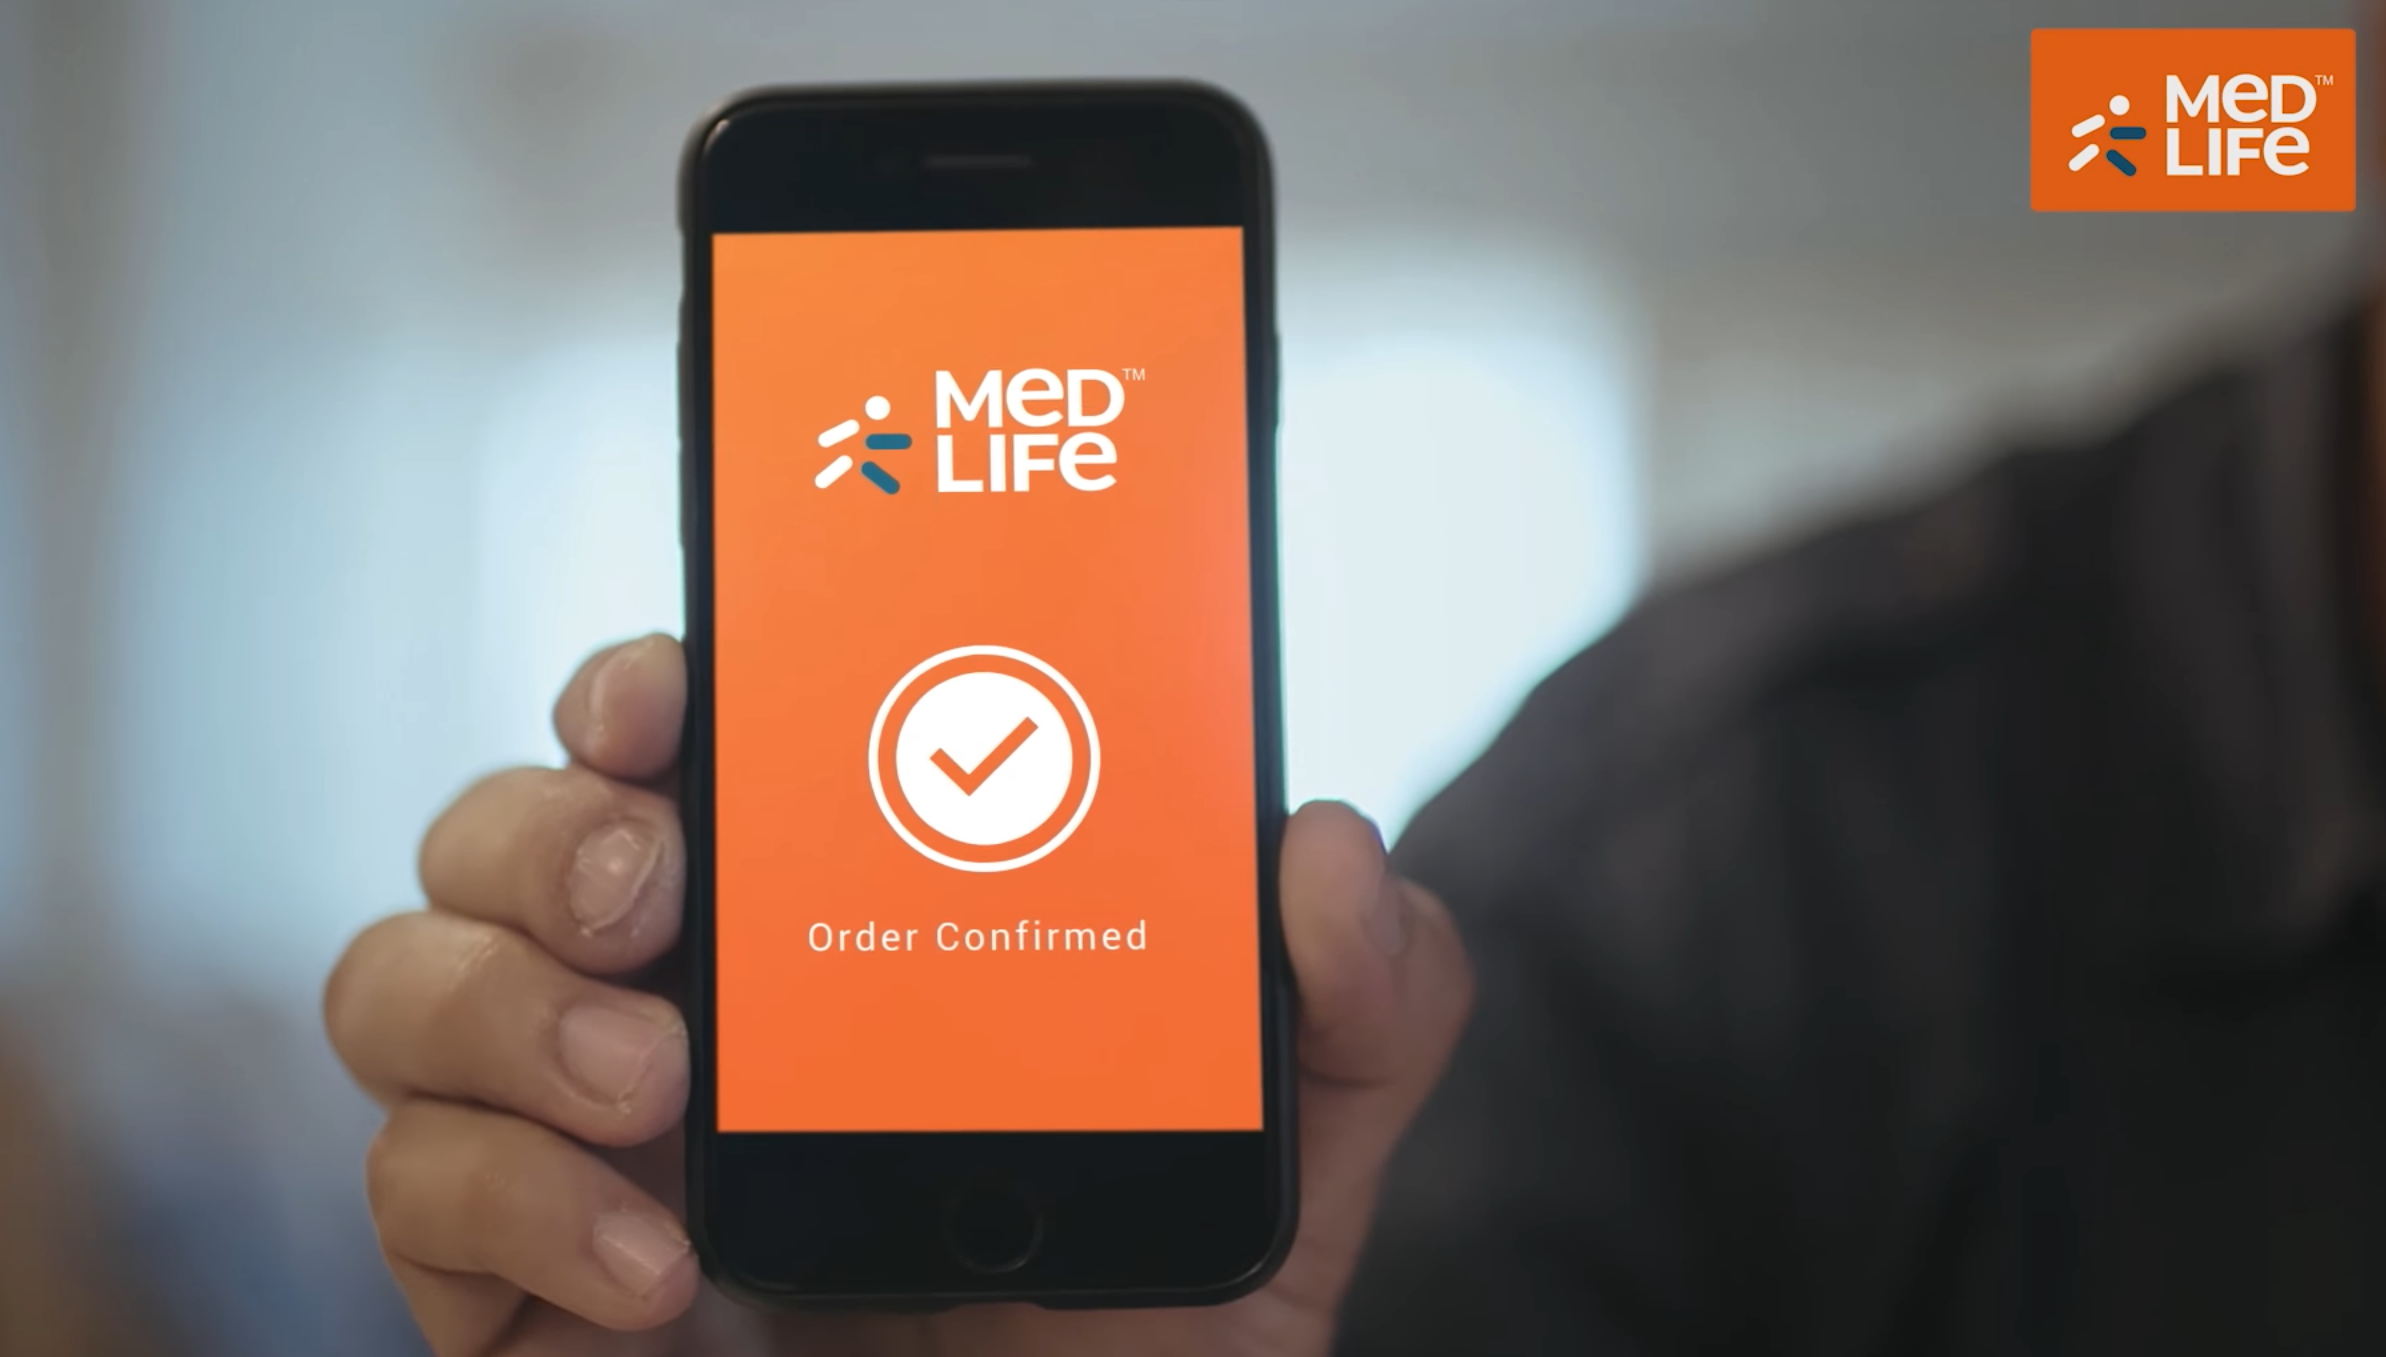 India's Online Pharmacy Medlife Raises INR 173 Cr